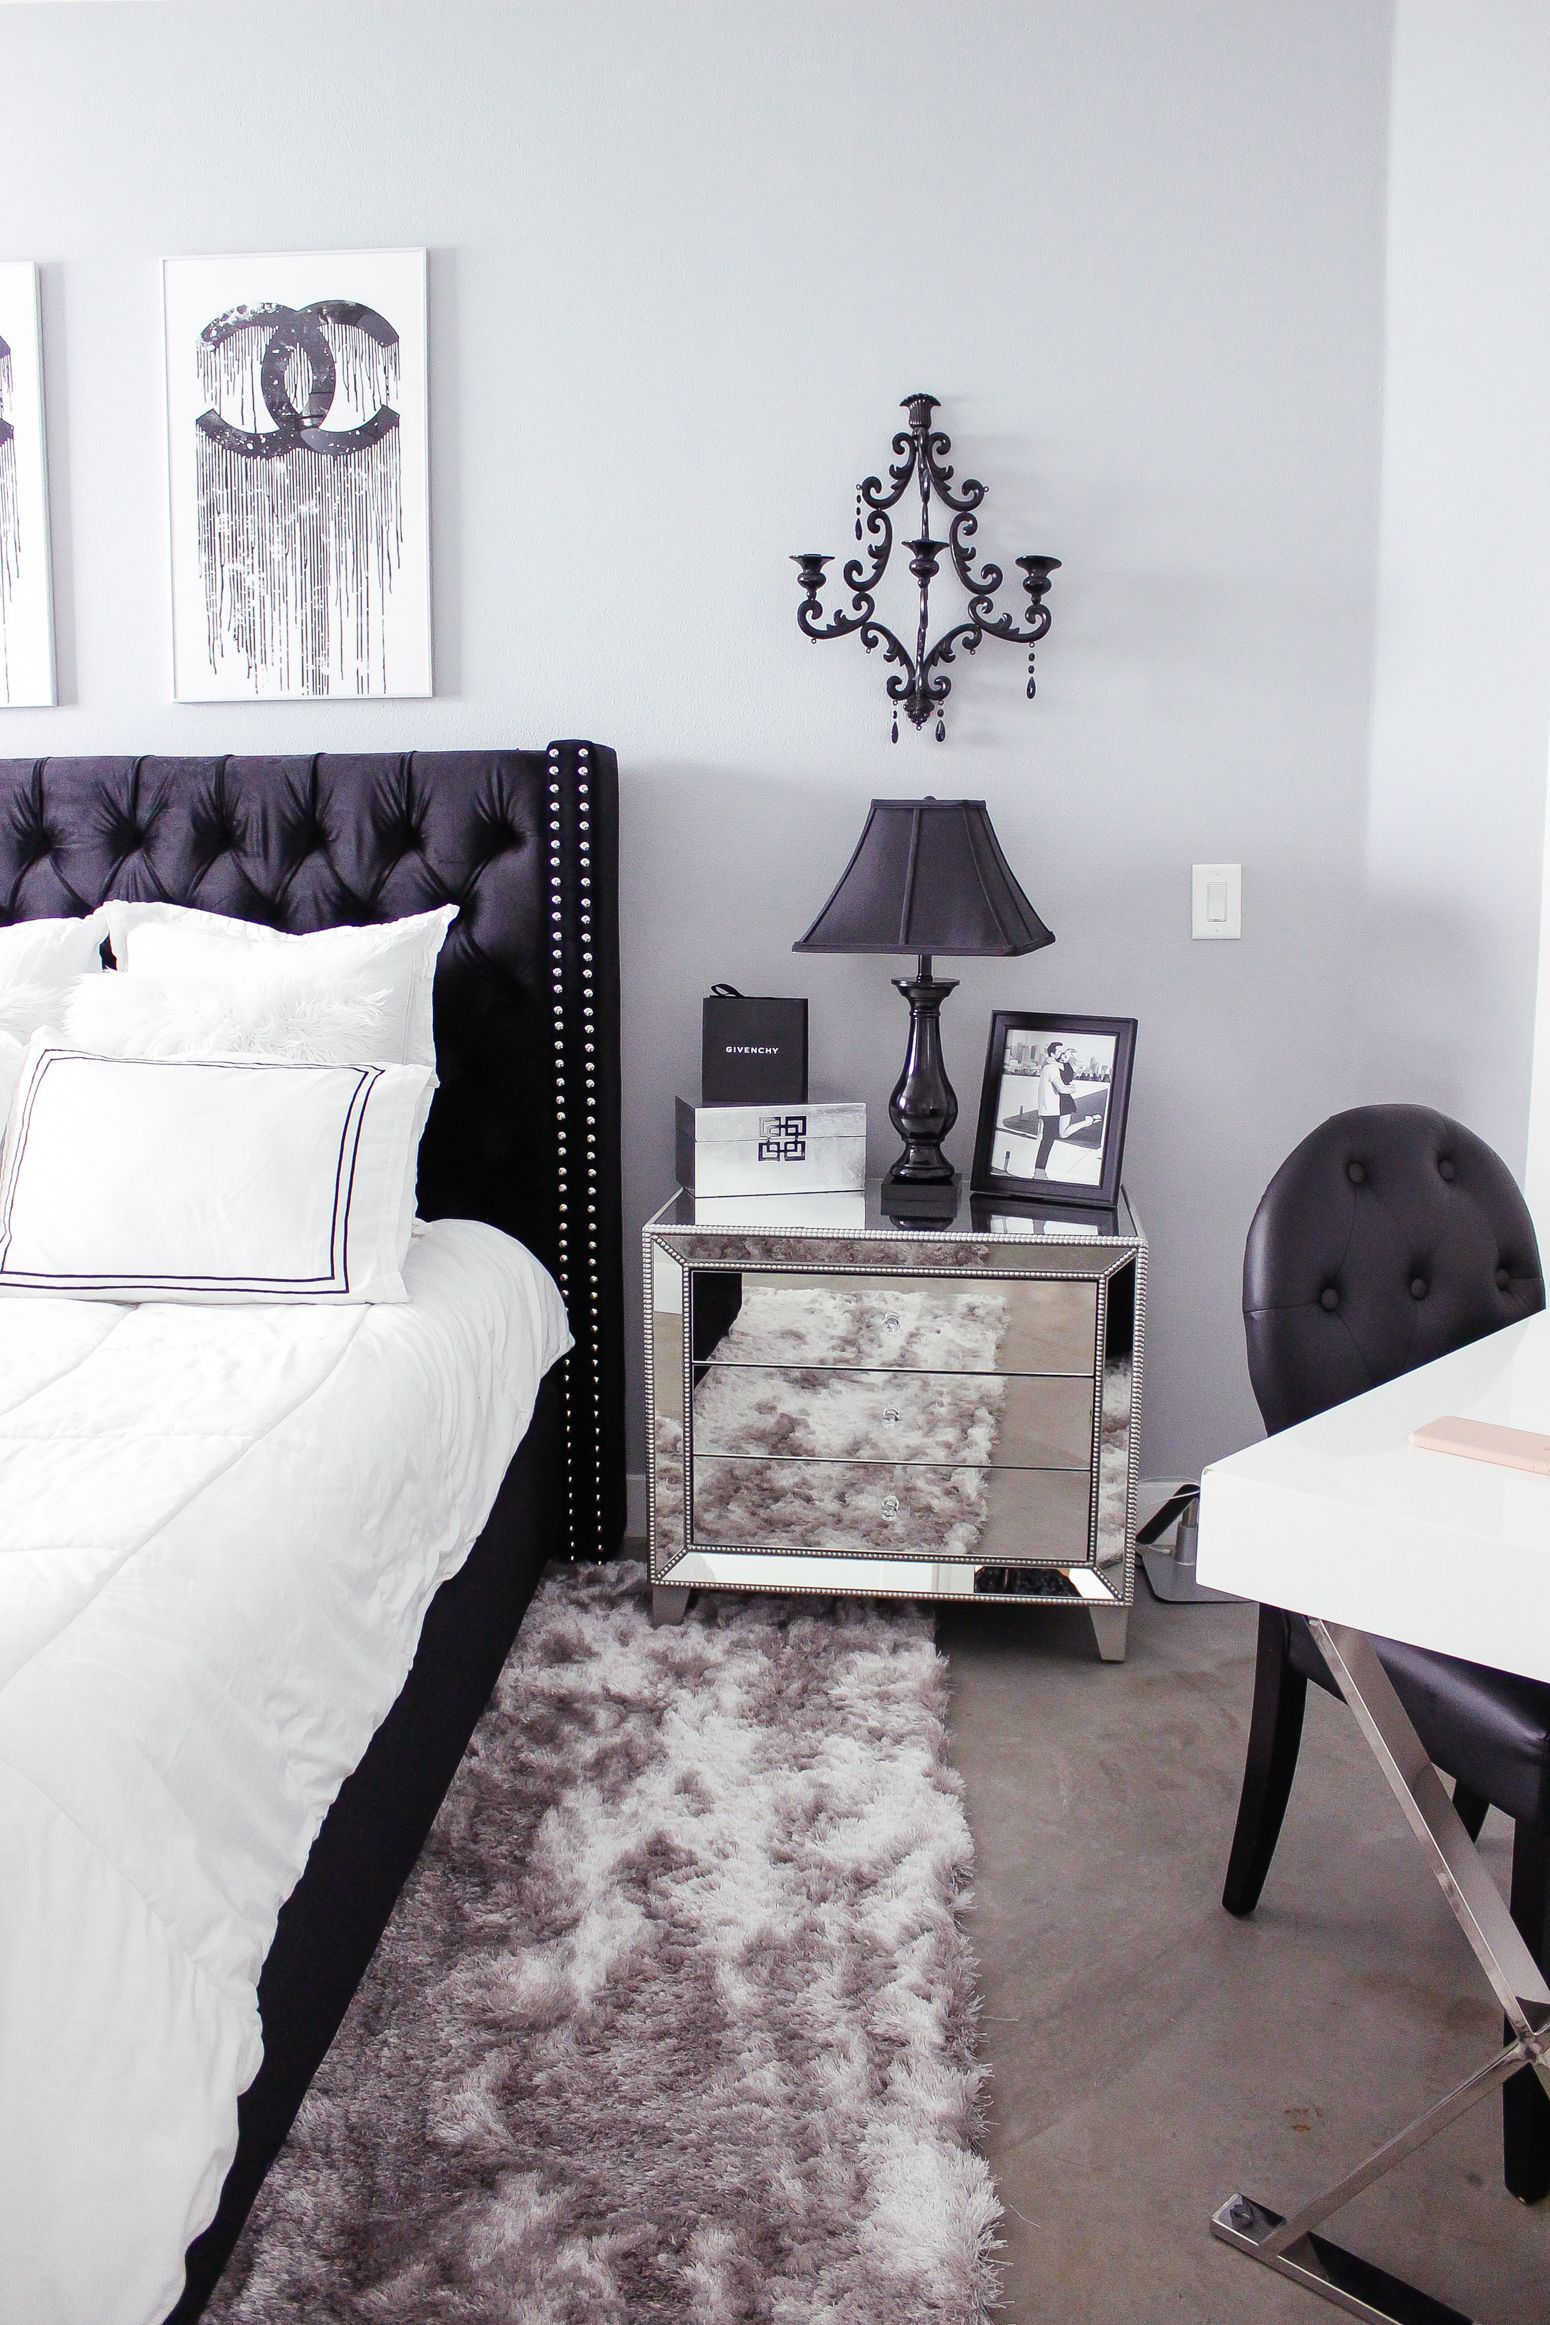 Black White Bedroom Decor Reveal White Bedroom Decor Black White Bedrooms Chic Bedroom